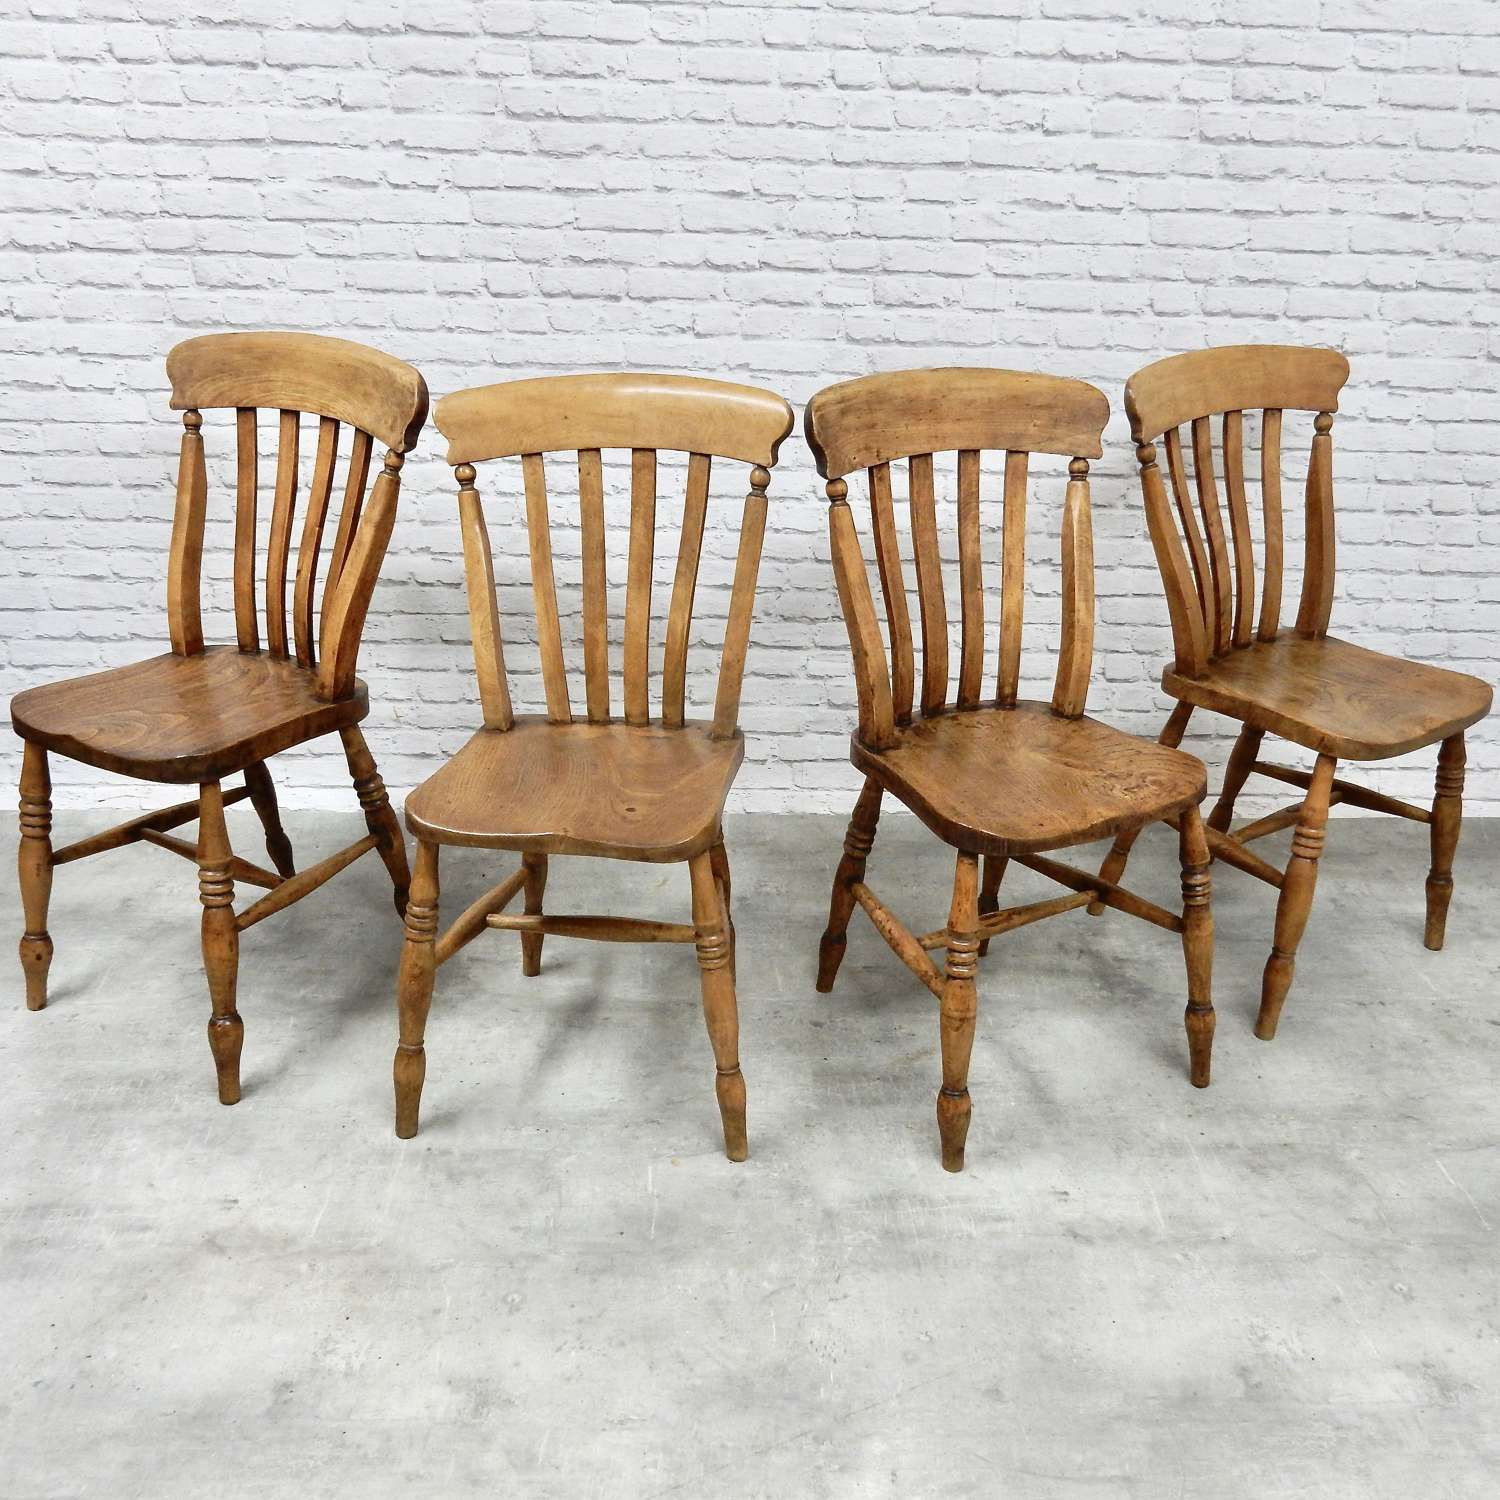 4x Windsor Kitchen Chairs